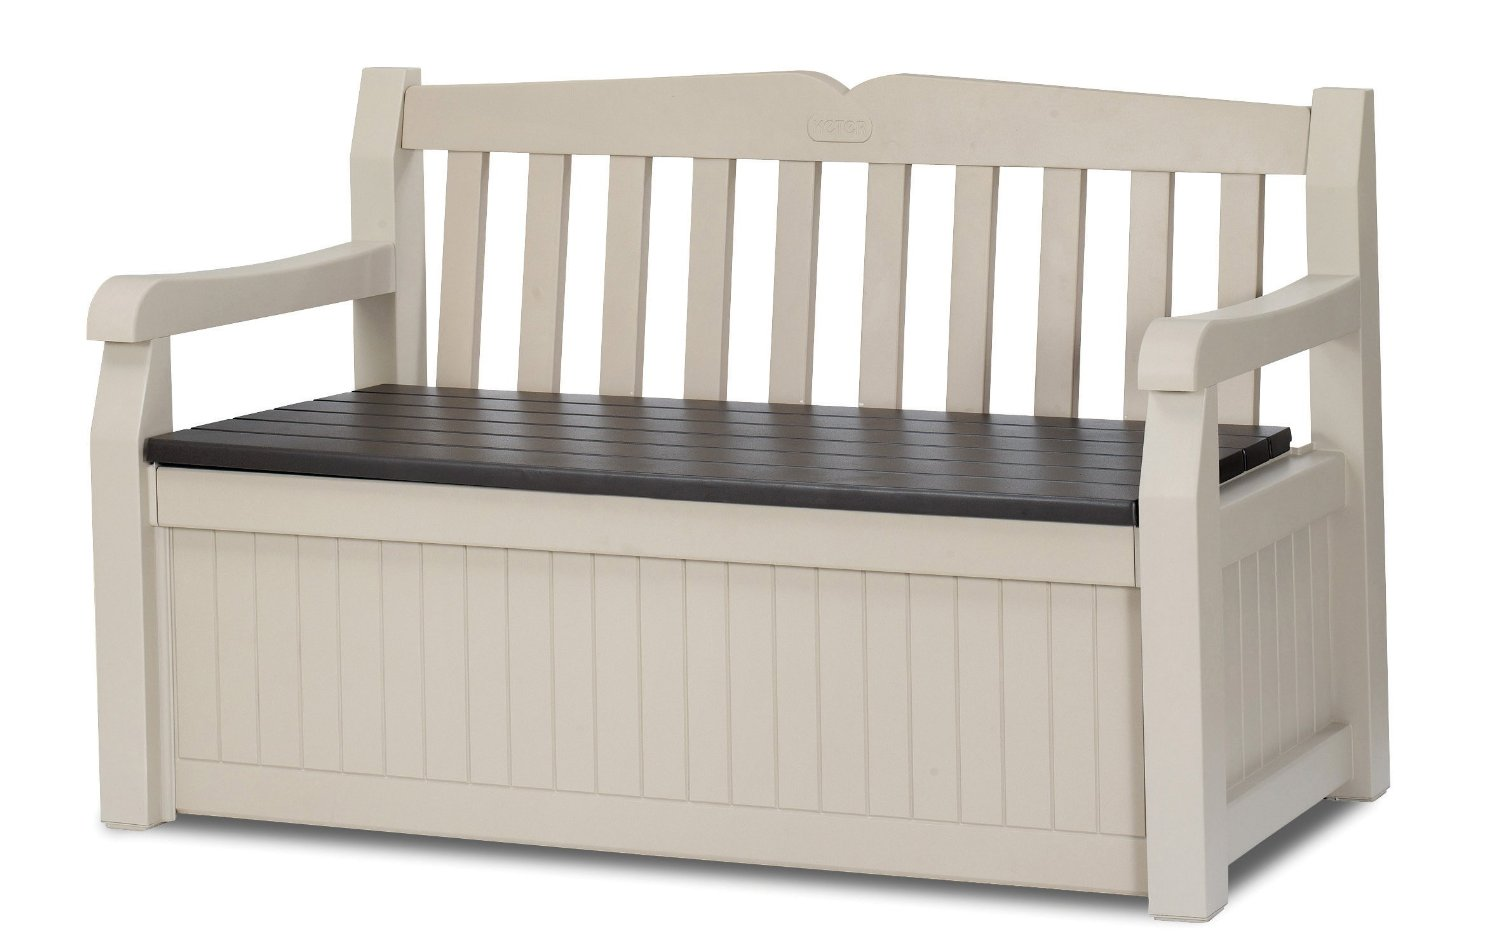 Awesome Target Outdoor Storage Bench Rubbermaid Patio